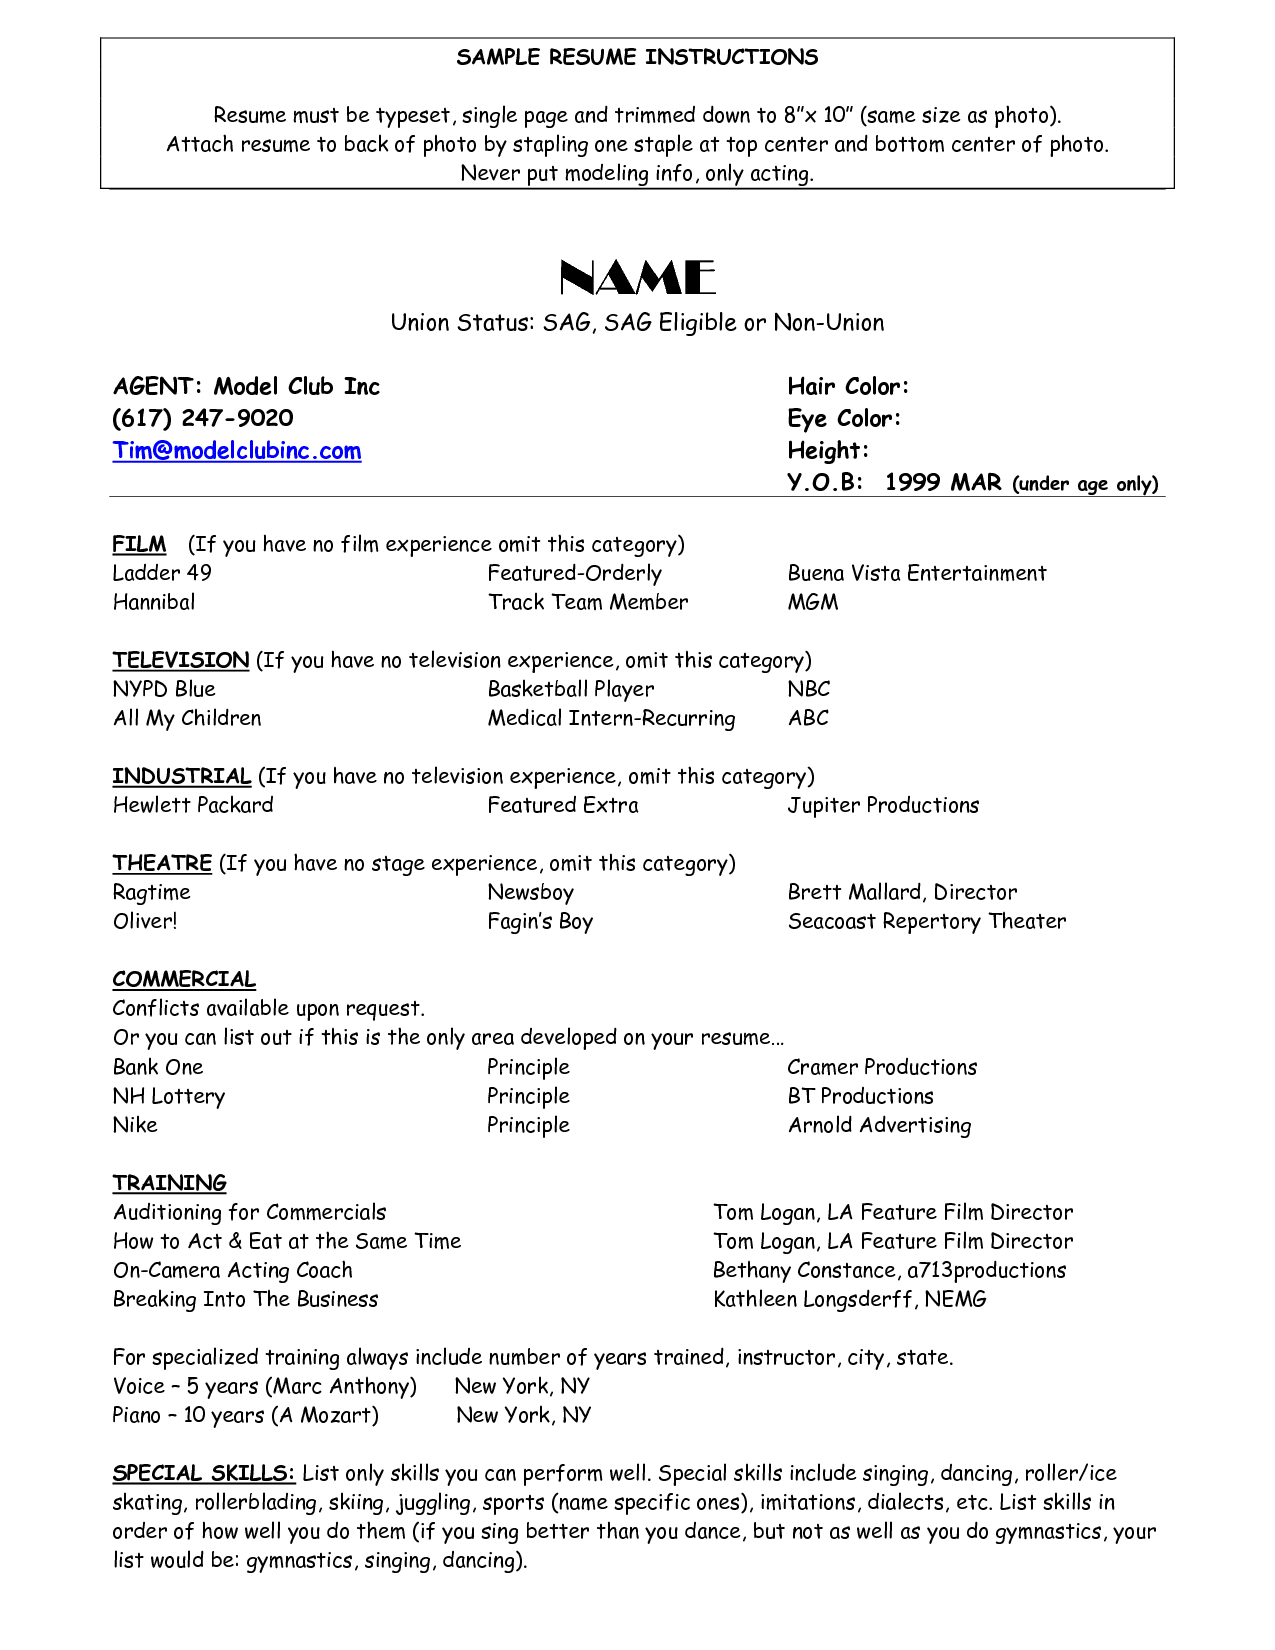 What To Put Under Skills On Resume Resume For Child Actor  Scope Of Work Template  Special Needs